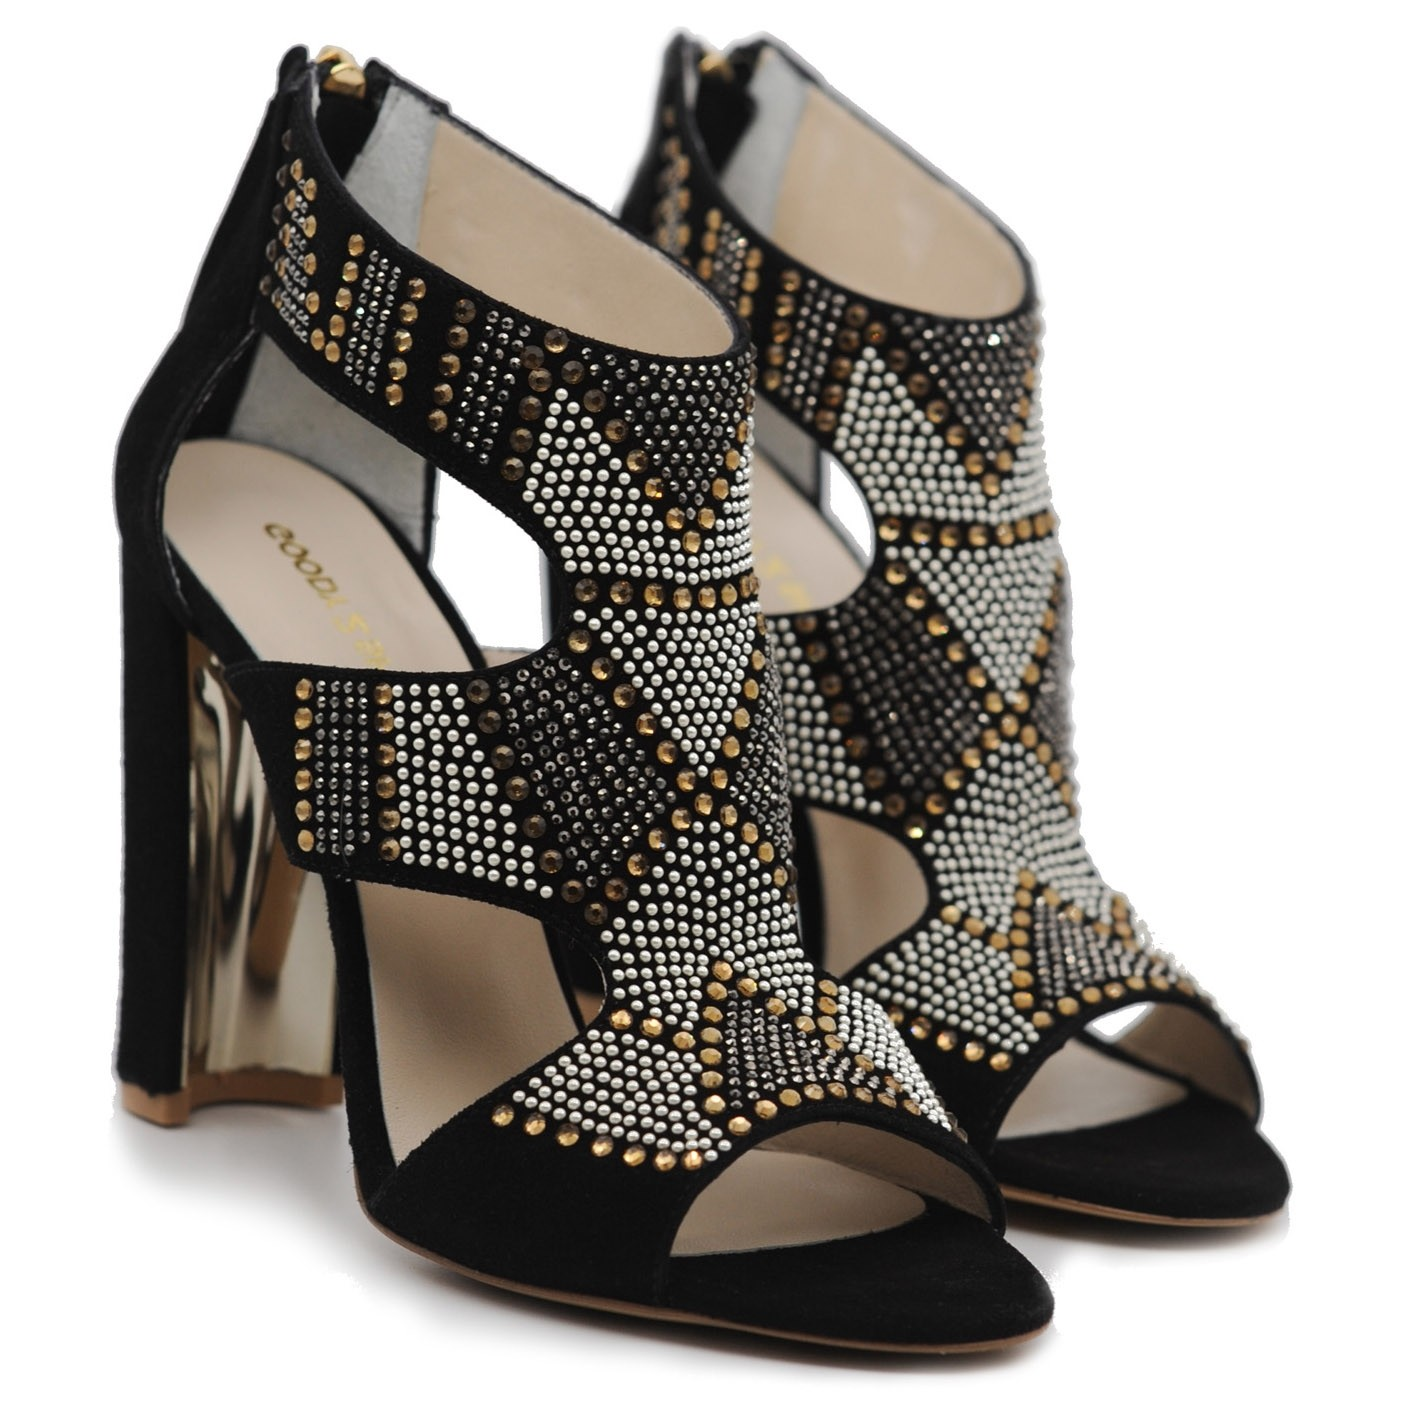 Stylish High Heels Jewelled Sandals with Ankle and Foot Support and Rear Zip